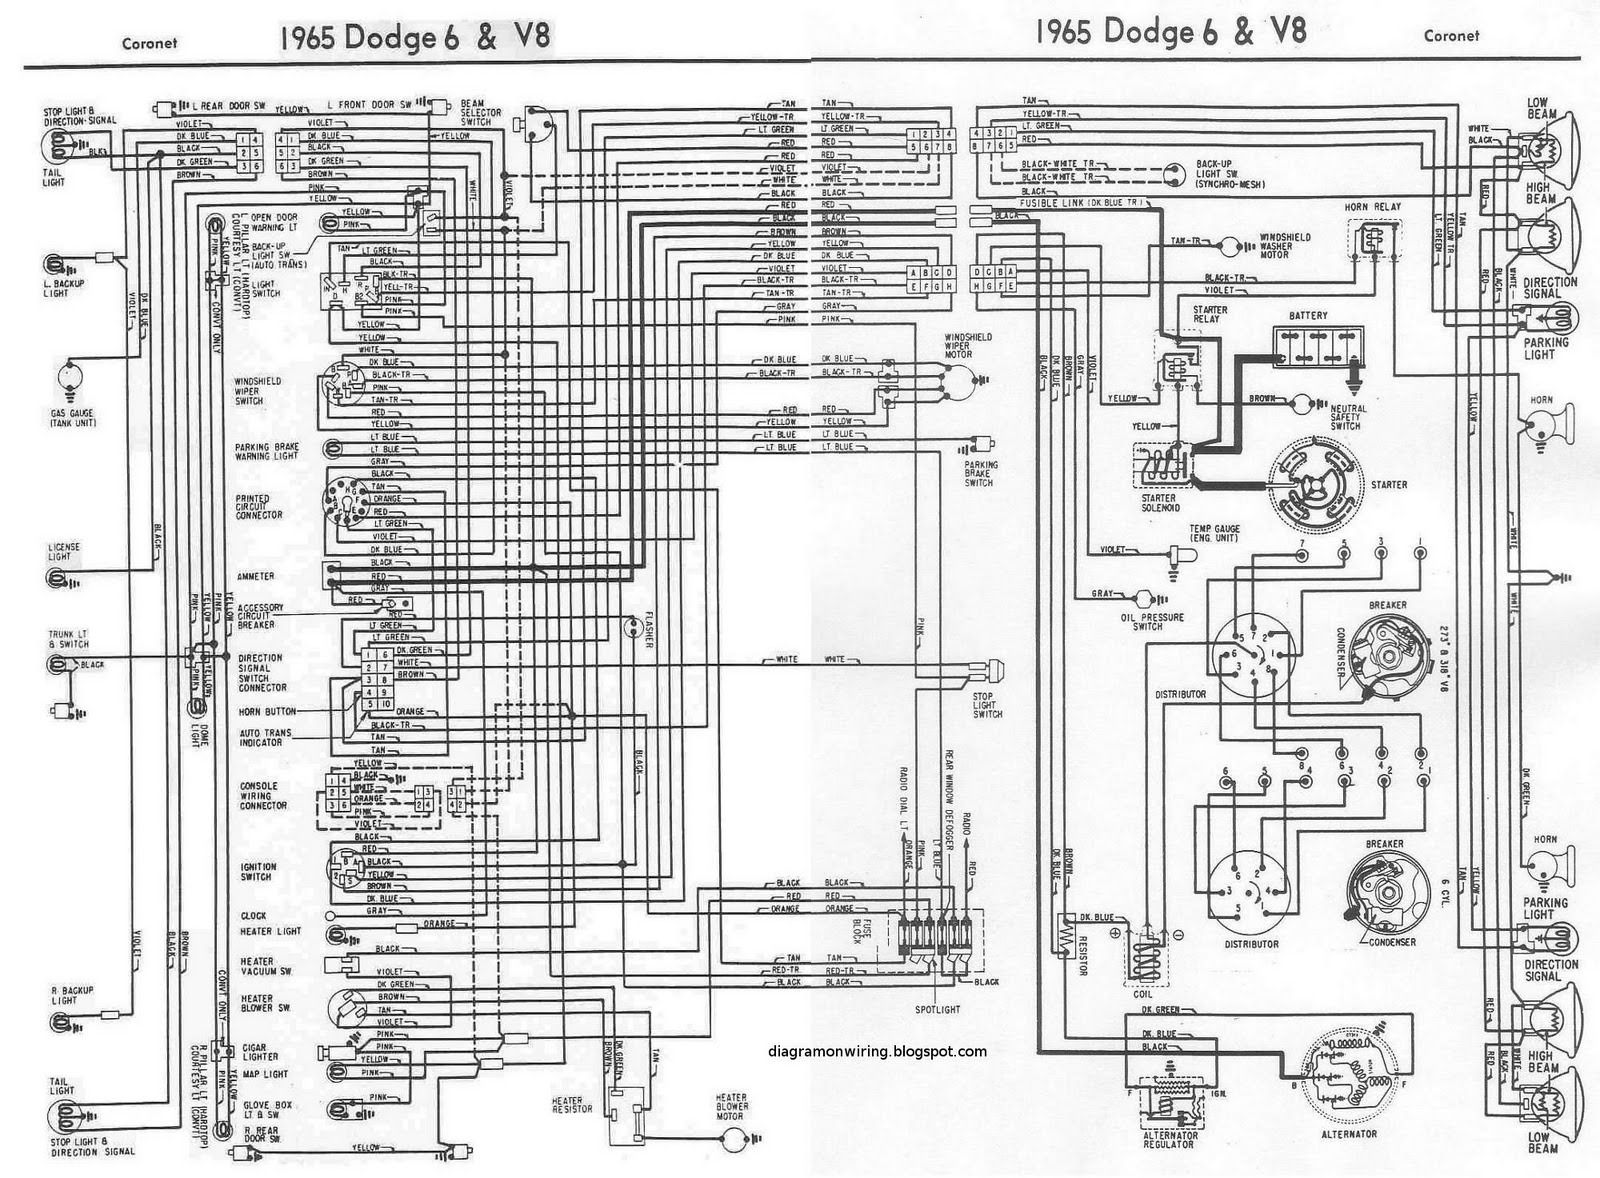 hight resolution of wiring diagram for 1966 dodge coronet wiring diagram article review 1965 dodge coronet wiring diagram source 1968 coronet engine